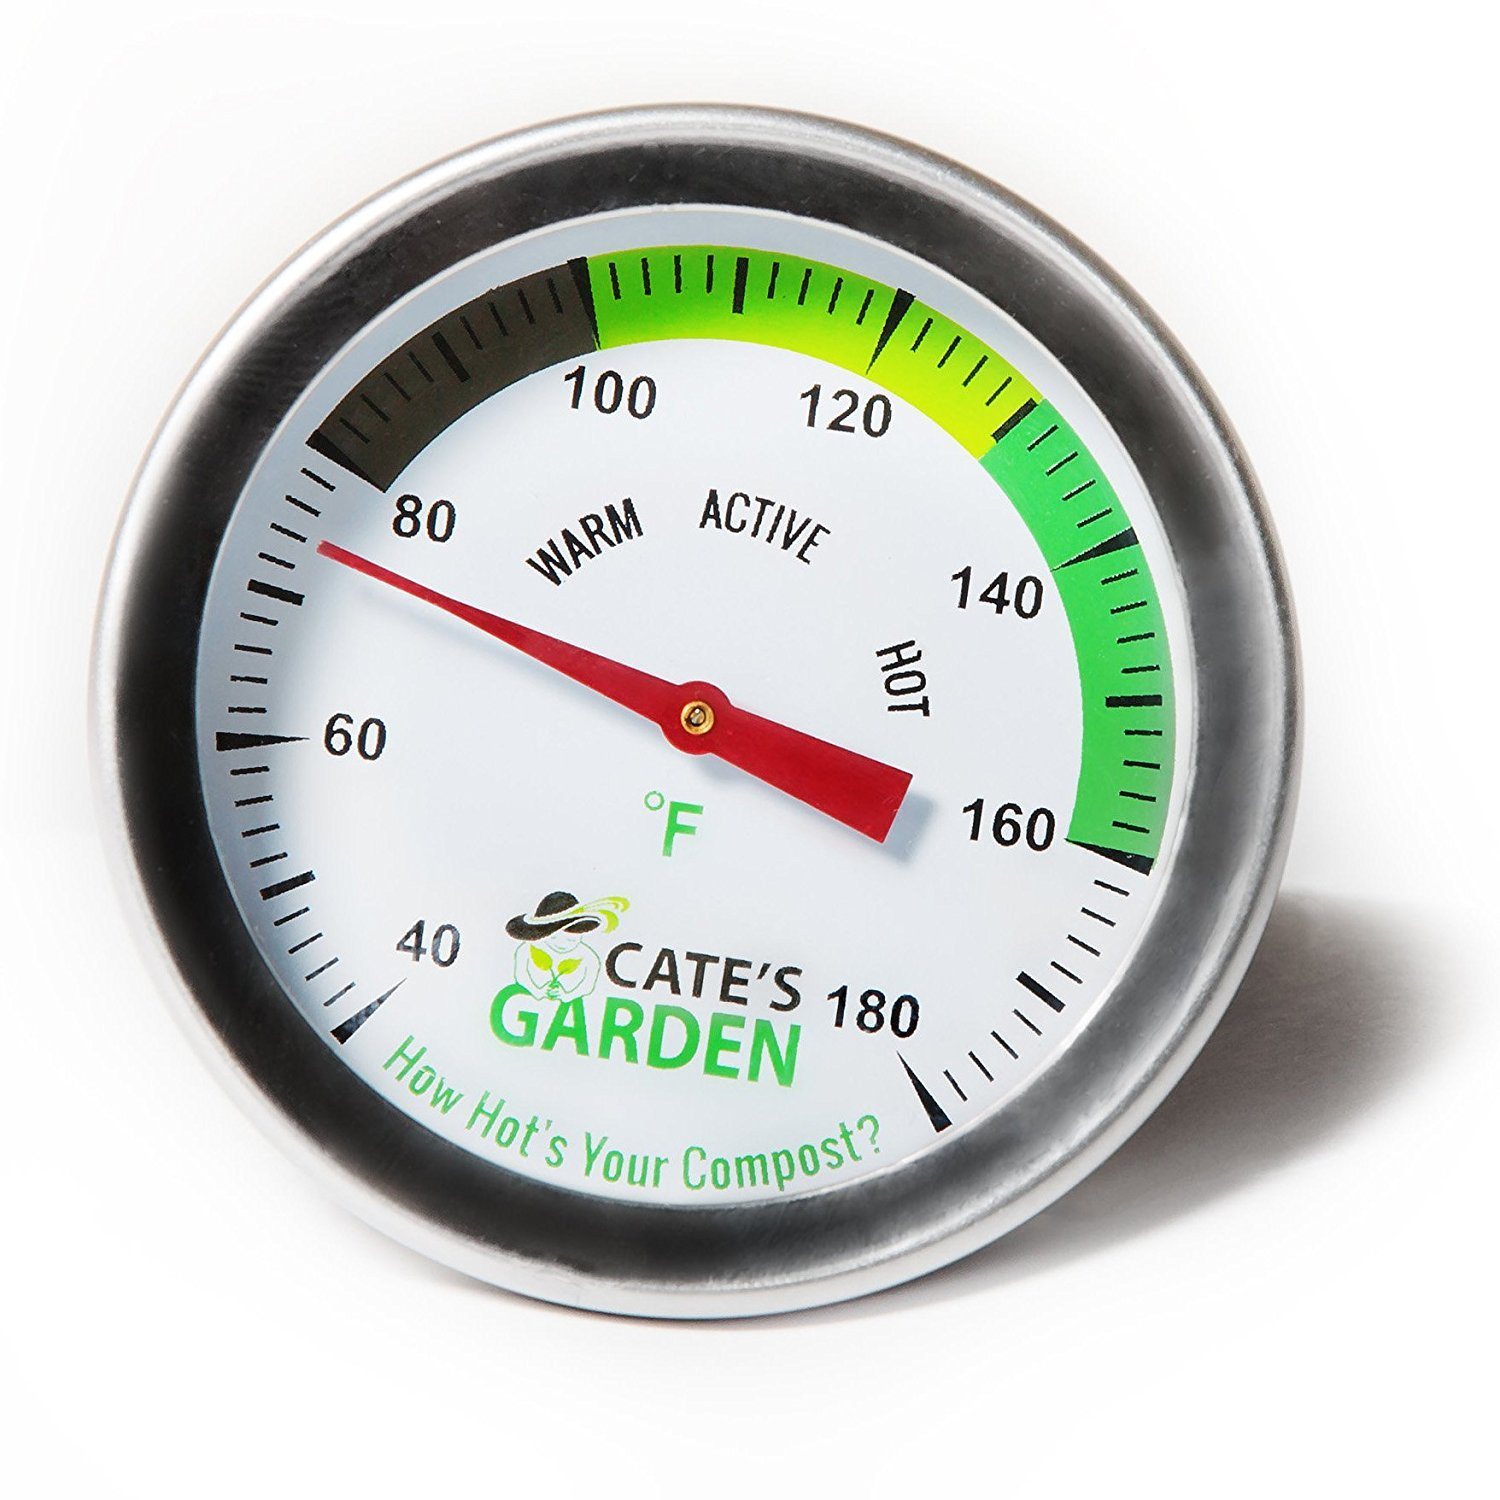 Compost Thermometer - Cate's Garden Premium Stainless Steel Bimetal